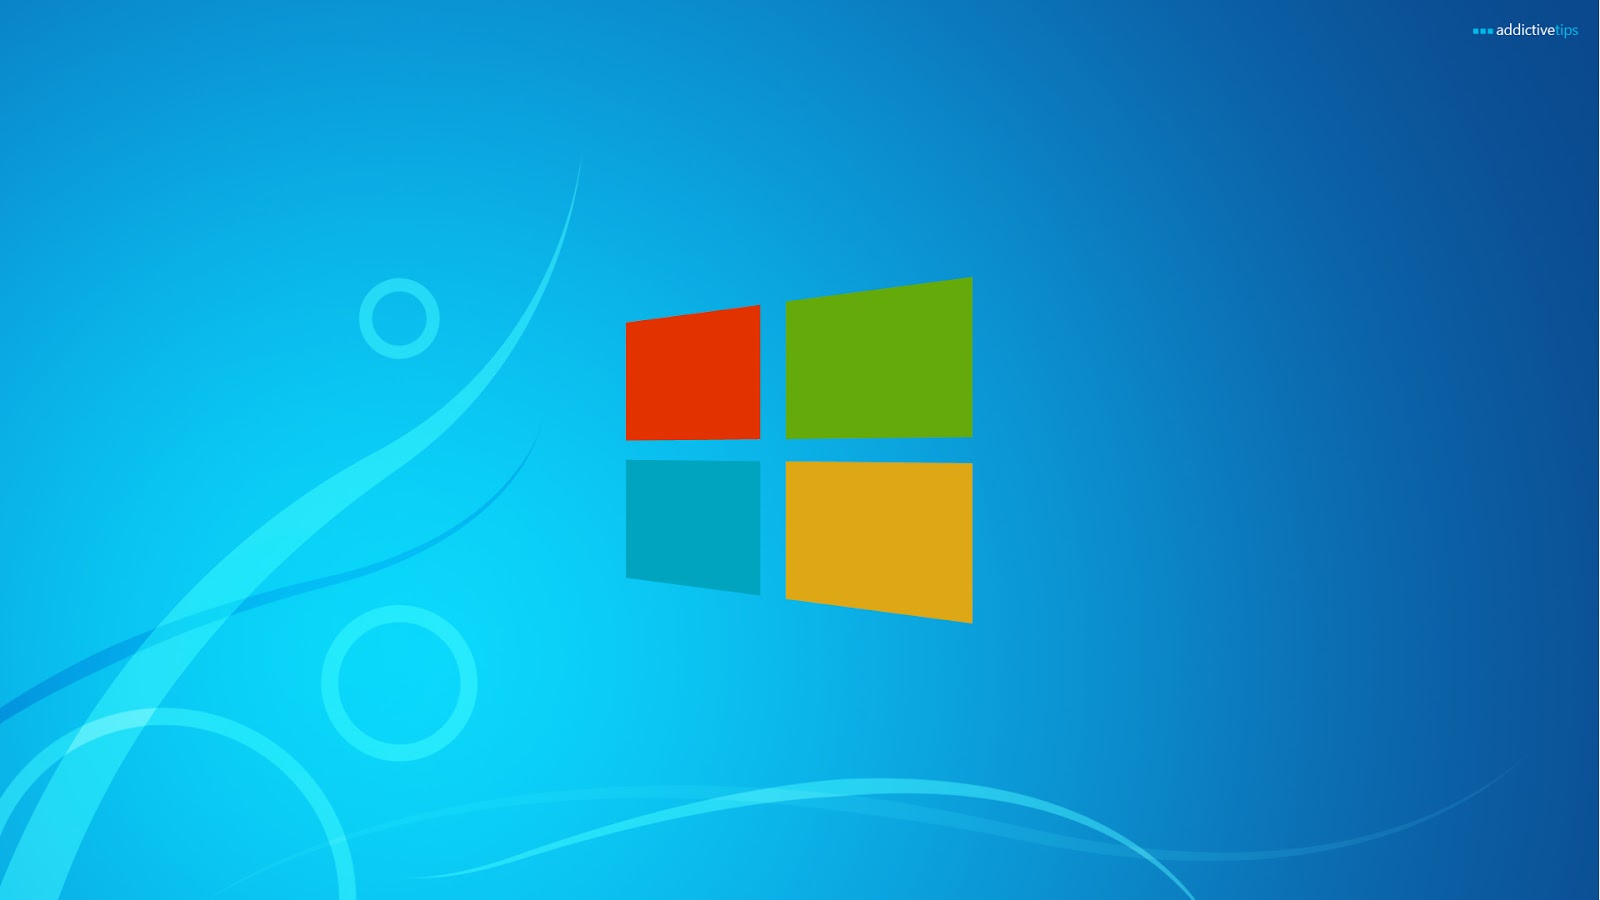 Windows 10 HD Wallpapers Free: Windows 10 Wallpaper Free